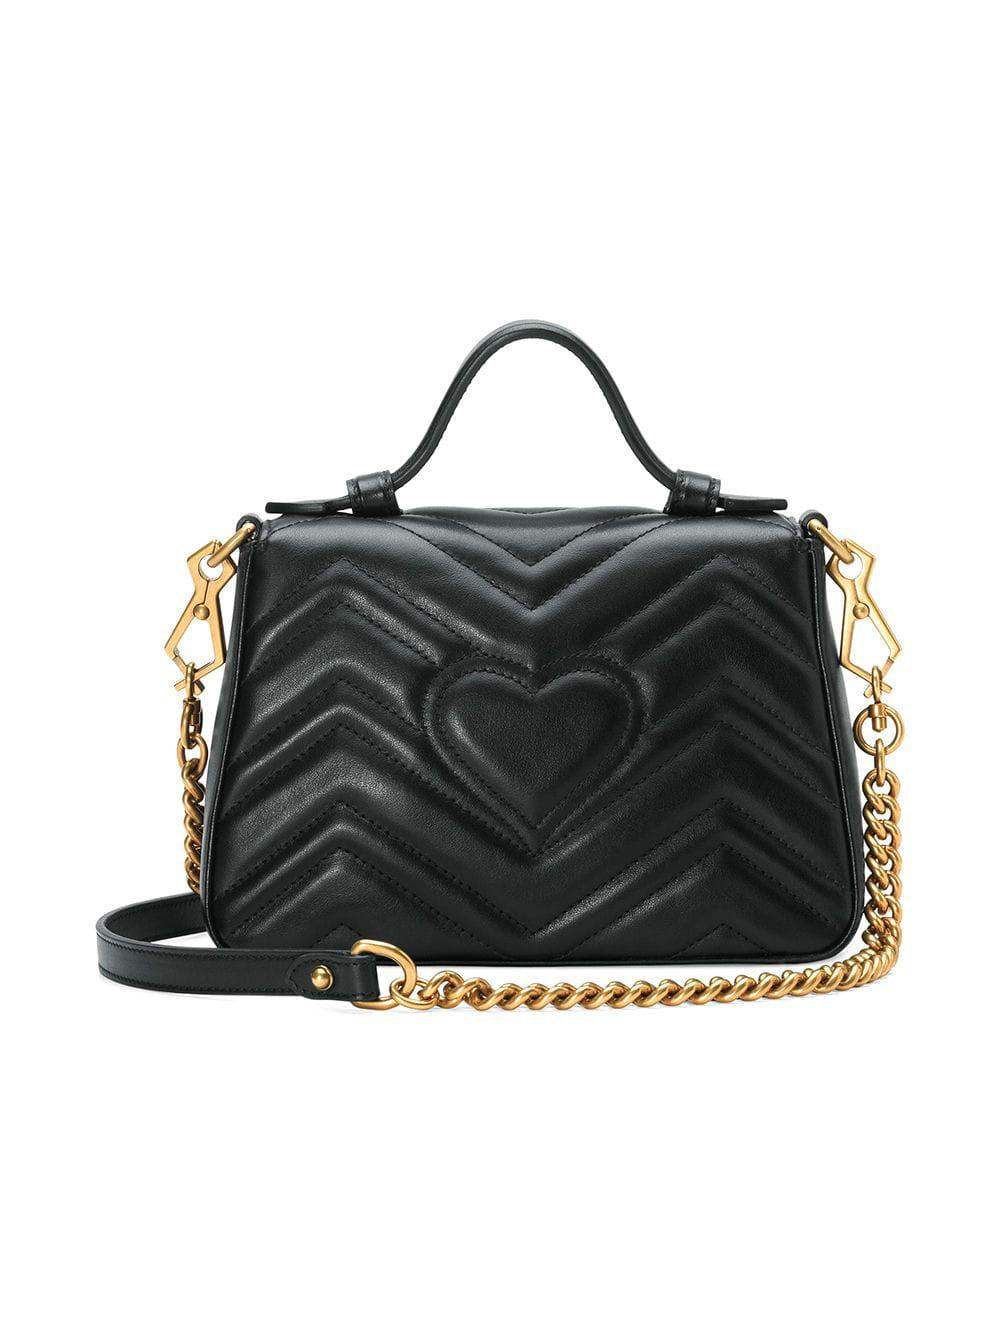 687afe7f973 Gucci Marmont 2.0 Leather Top Handle Bag in Black - Lyst